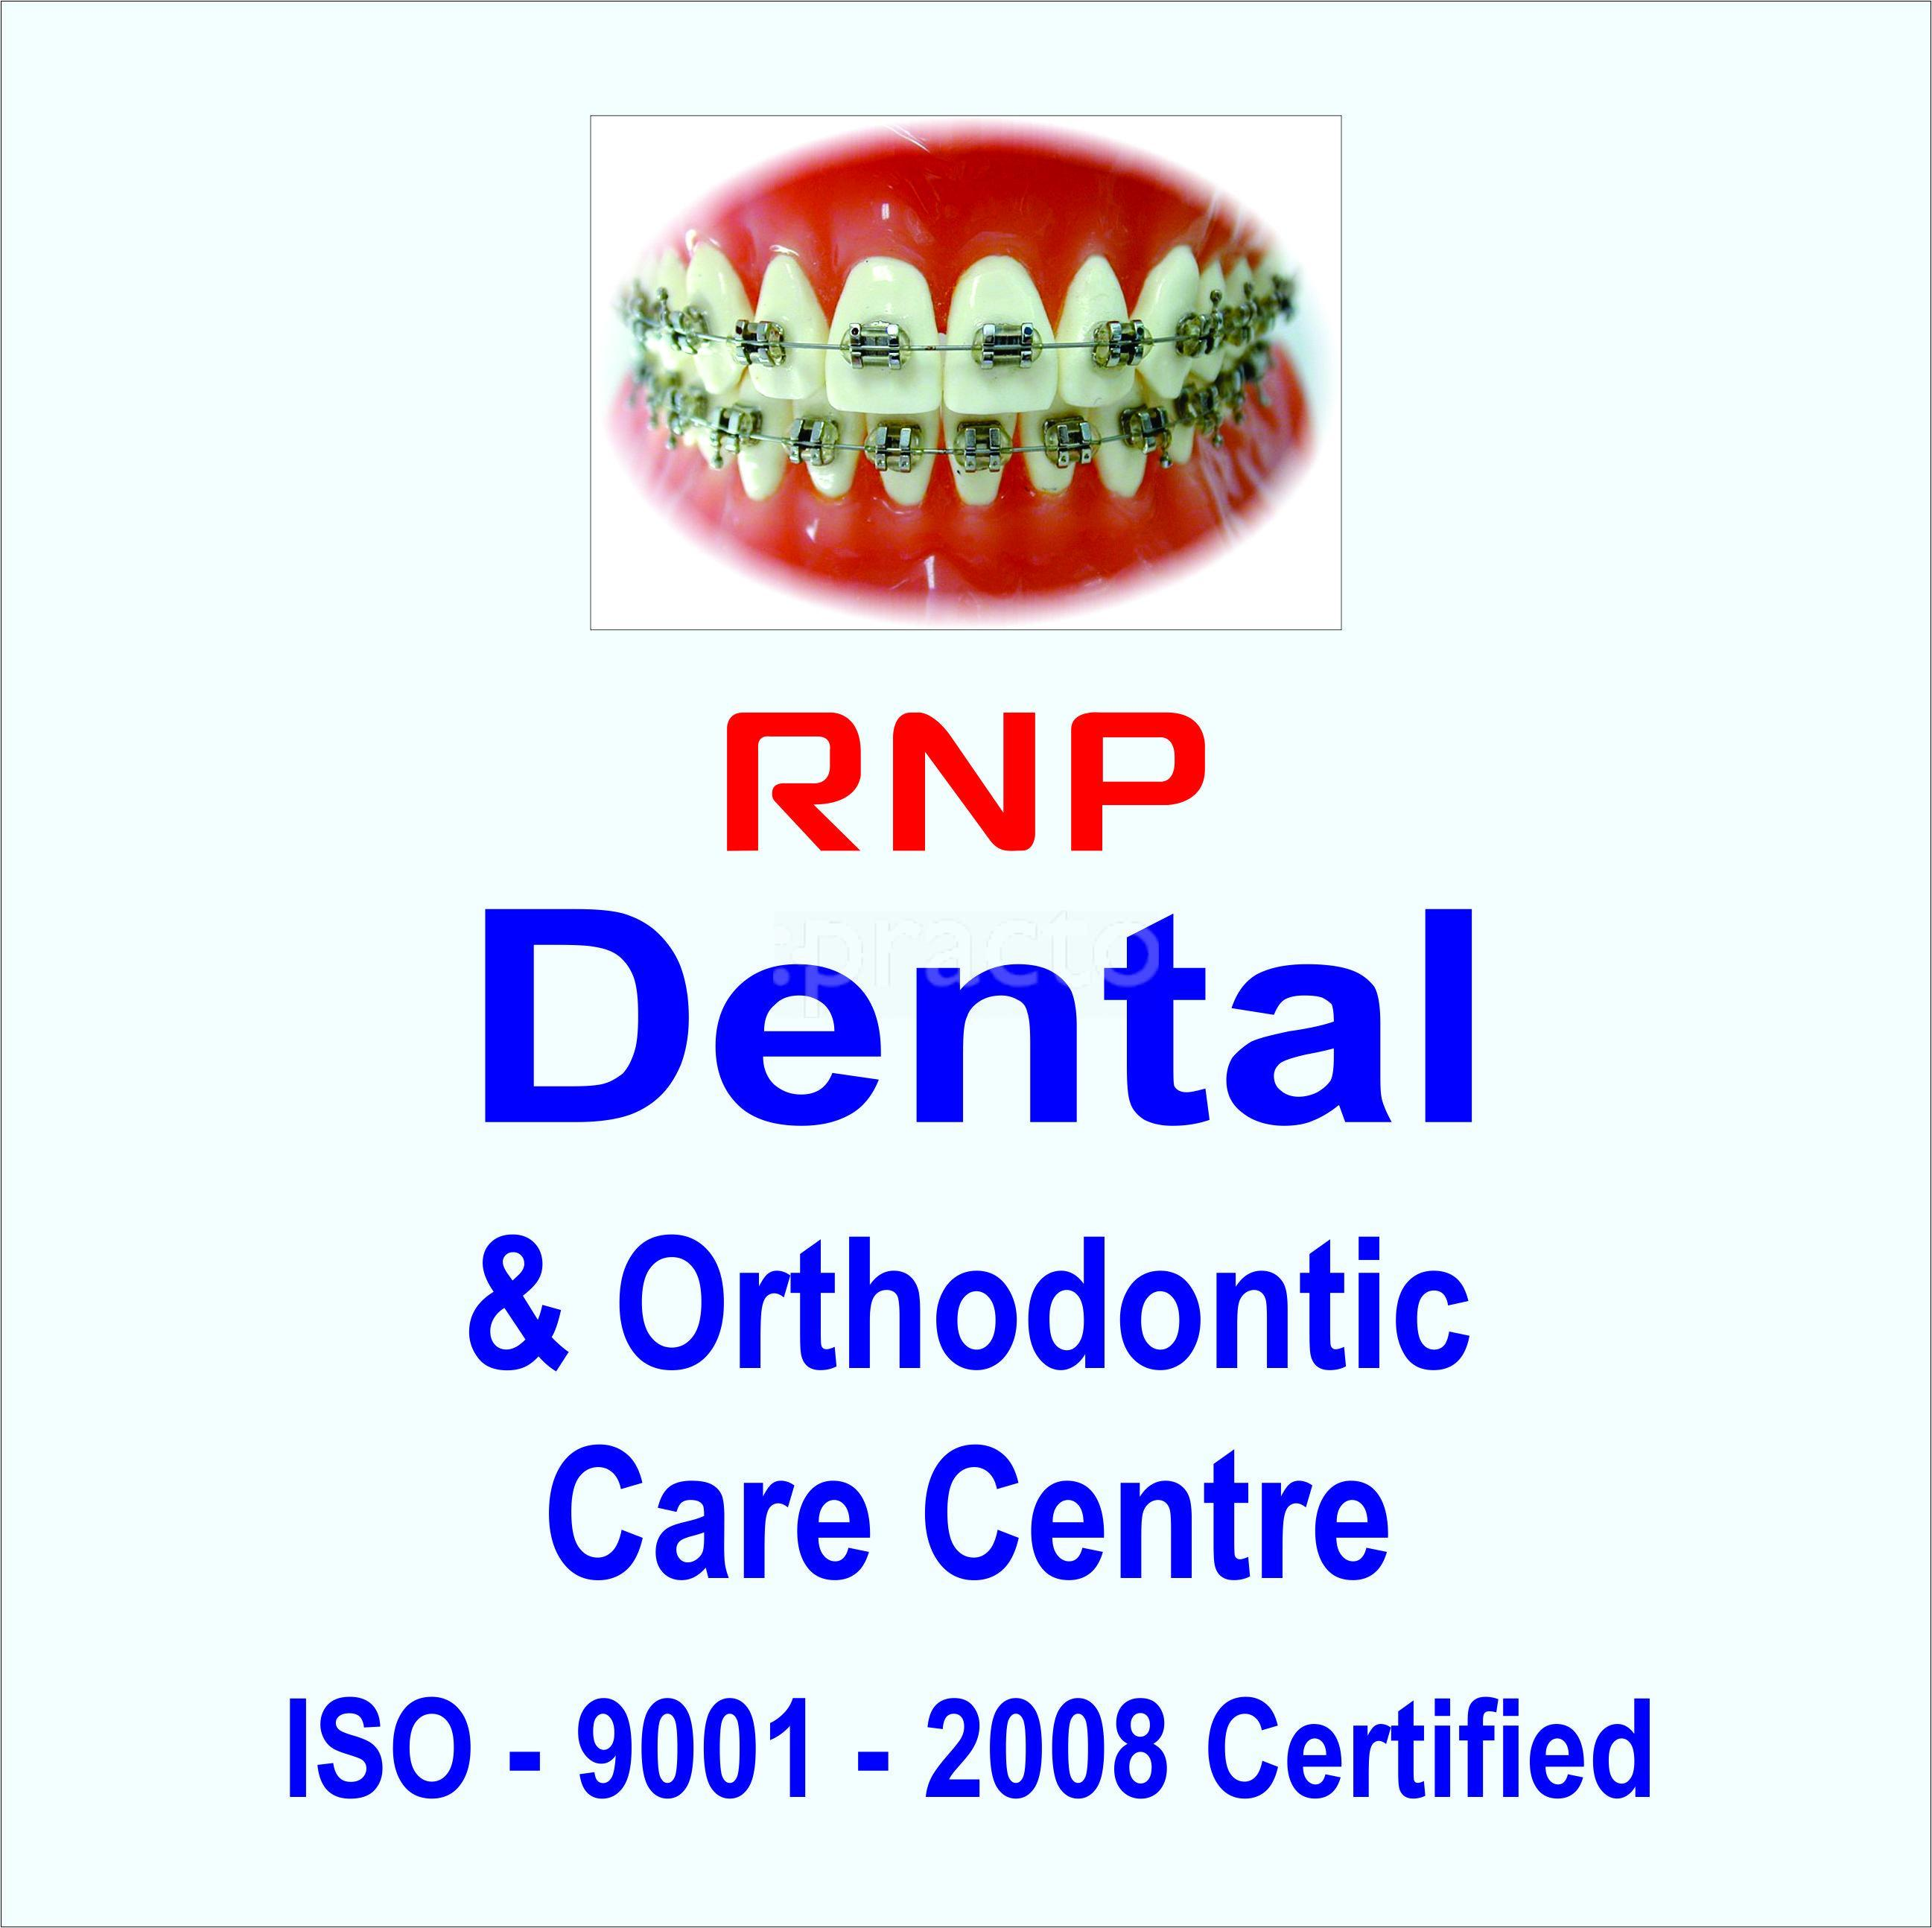 RNP Dental and Orthodontic Care Centre